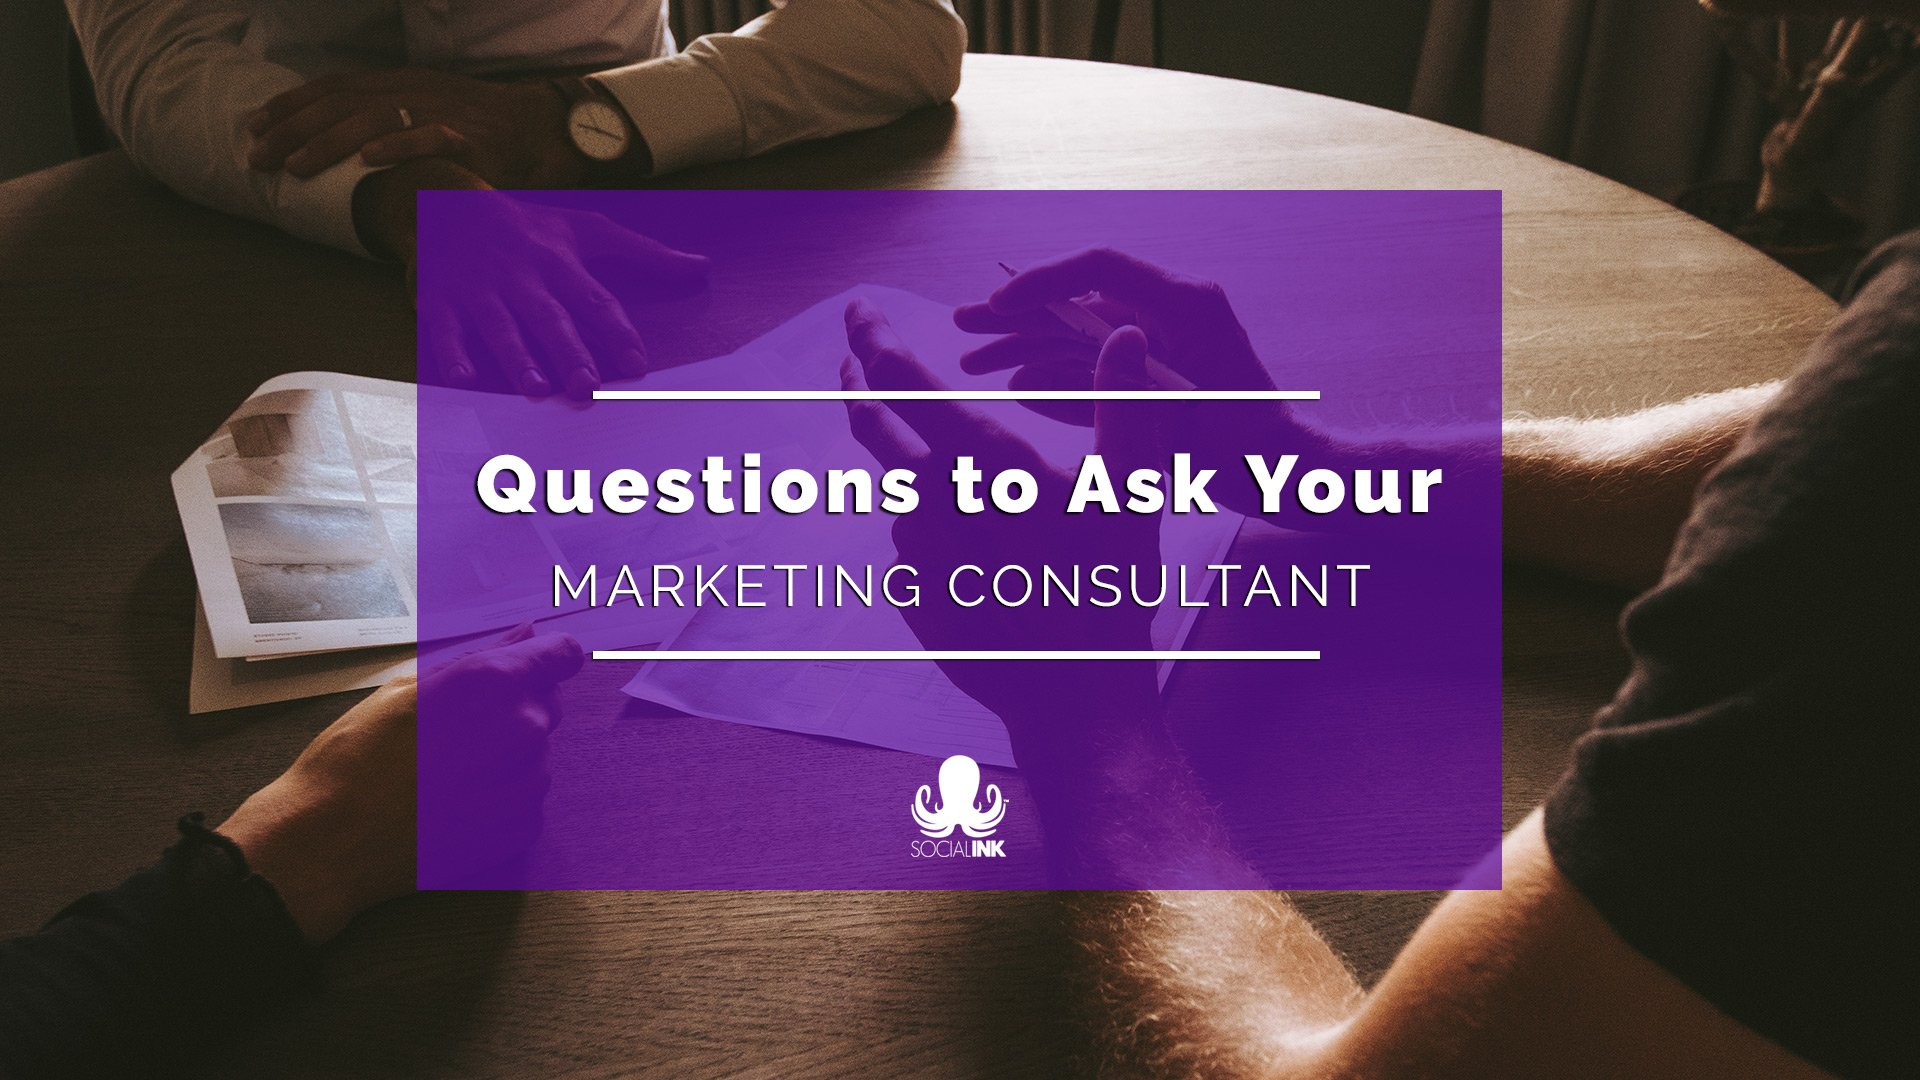 Questions to Ask Your Marketing Consultant